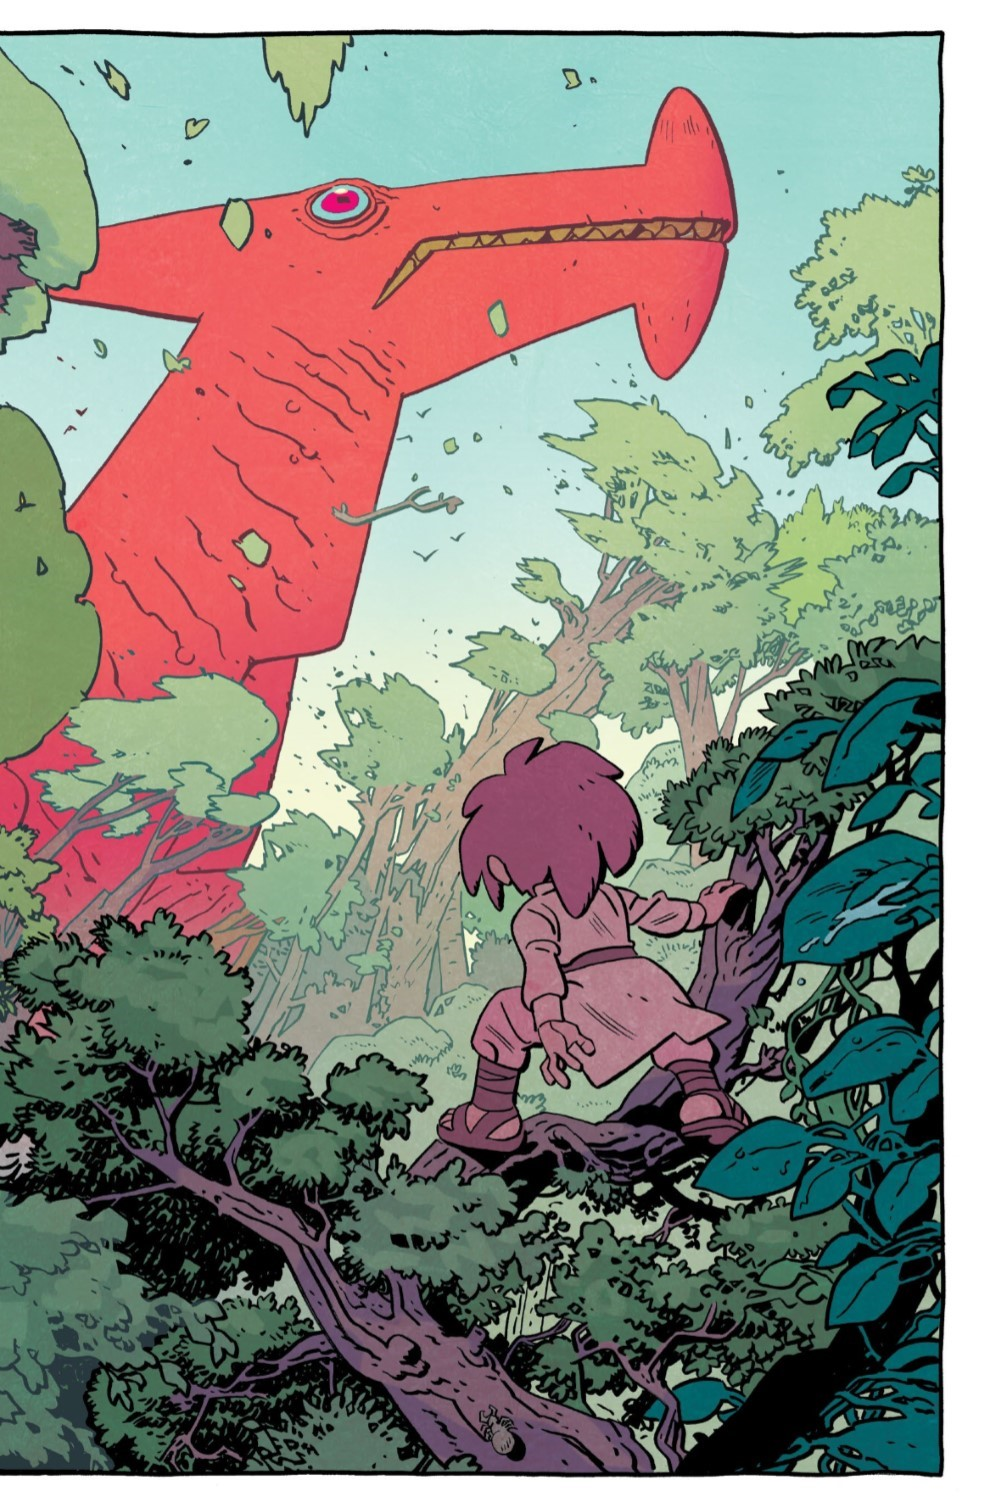 JONNA-V1-REFERENCE-016 ComicList Previews: JONNA AND THE UNPOSSIBLE MONSTER VOLUME 1 TP